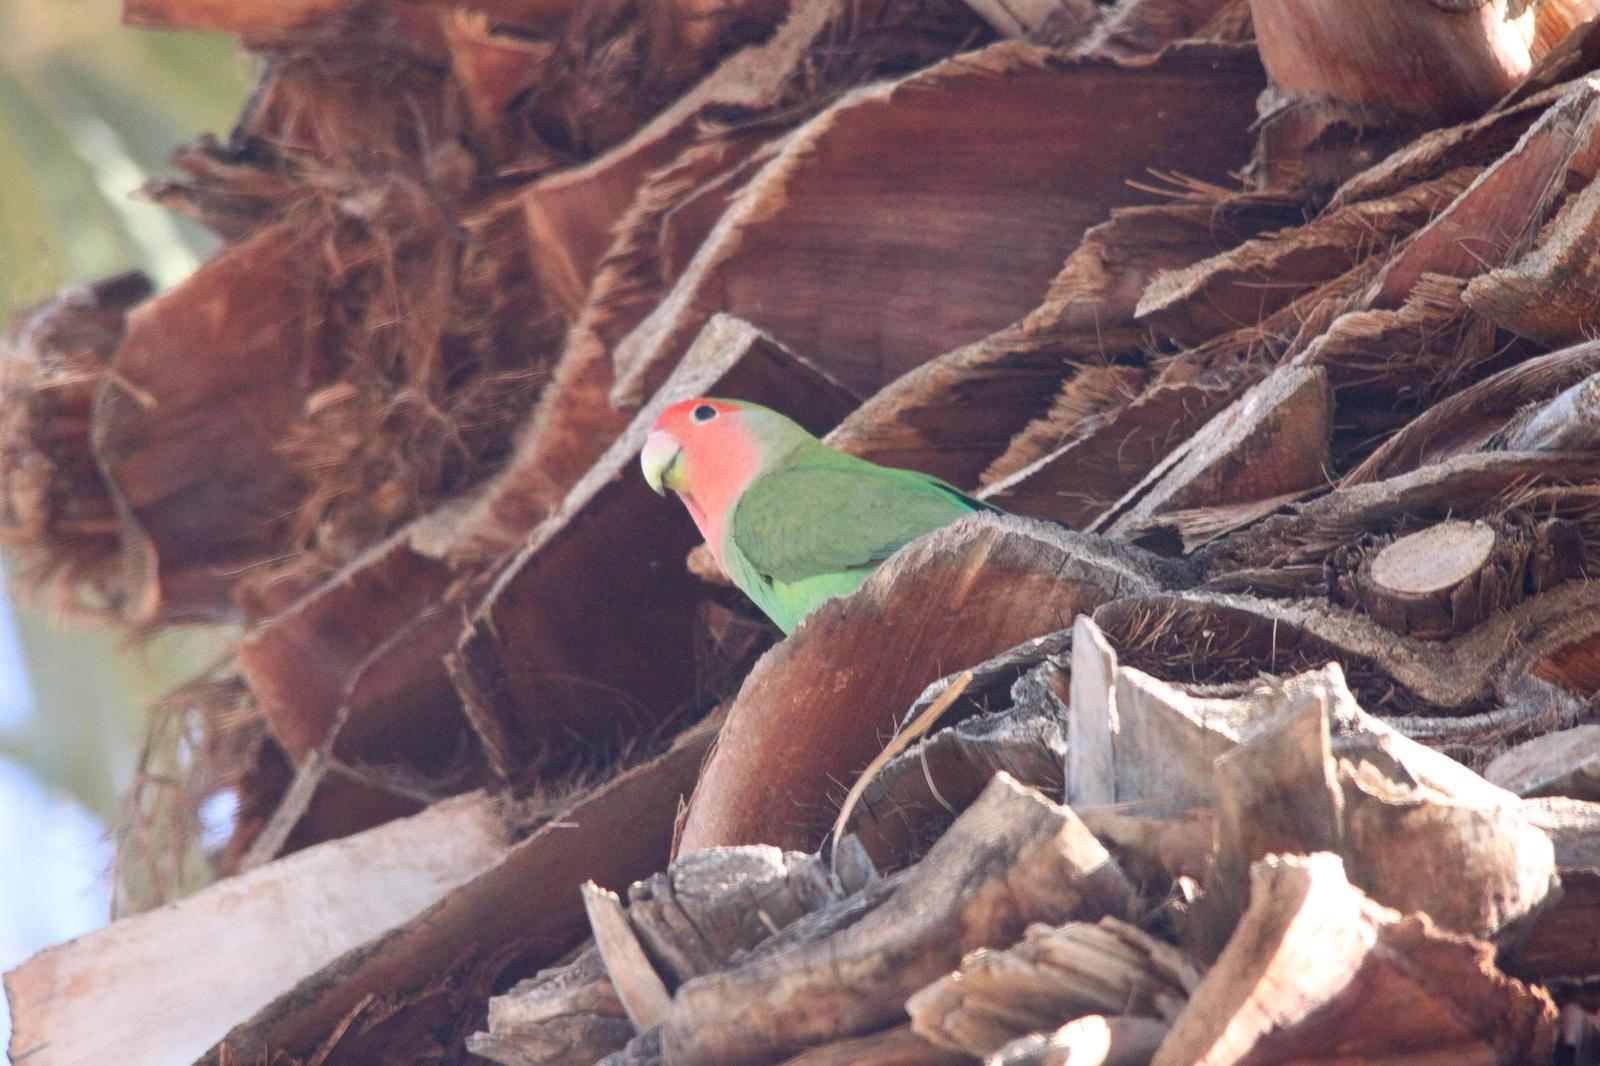 Rosy-faced Lovebird Photo by Tom Ford-Hutchinson